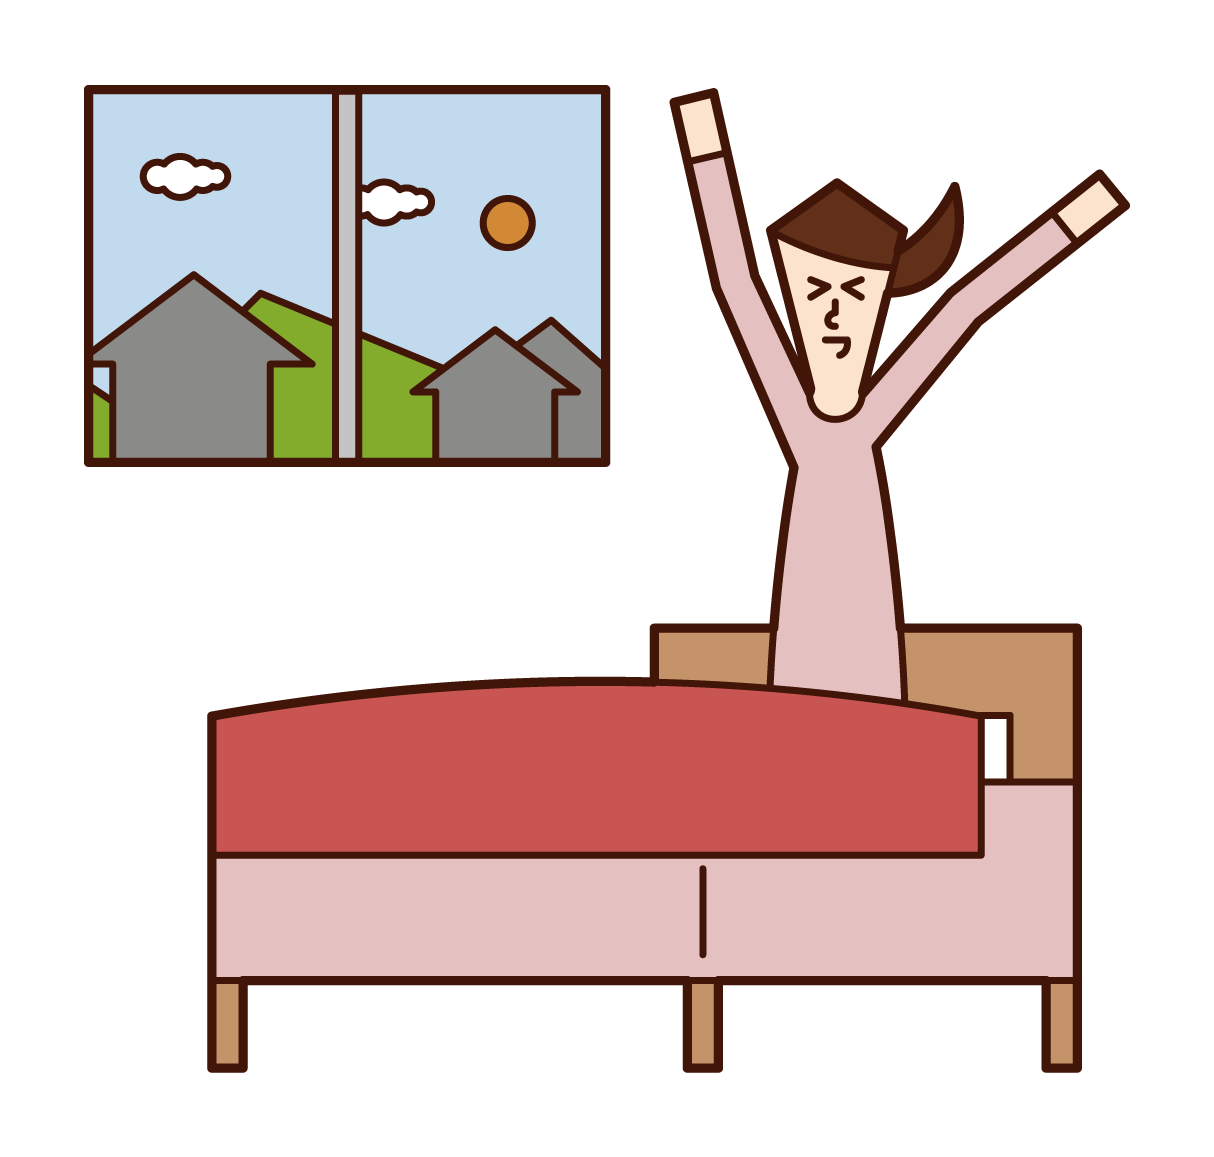 Illustration of a woman who wakes up